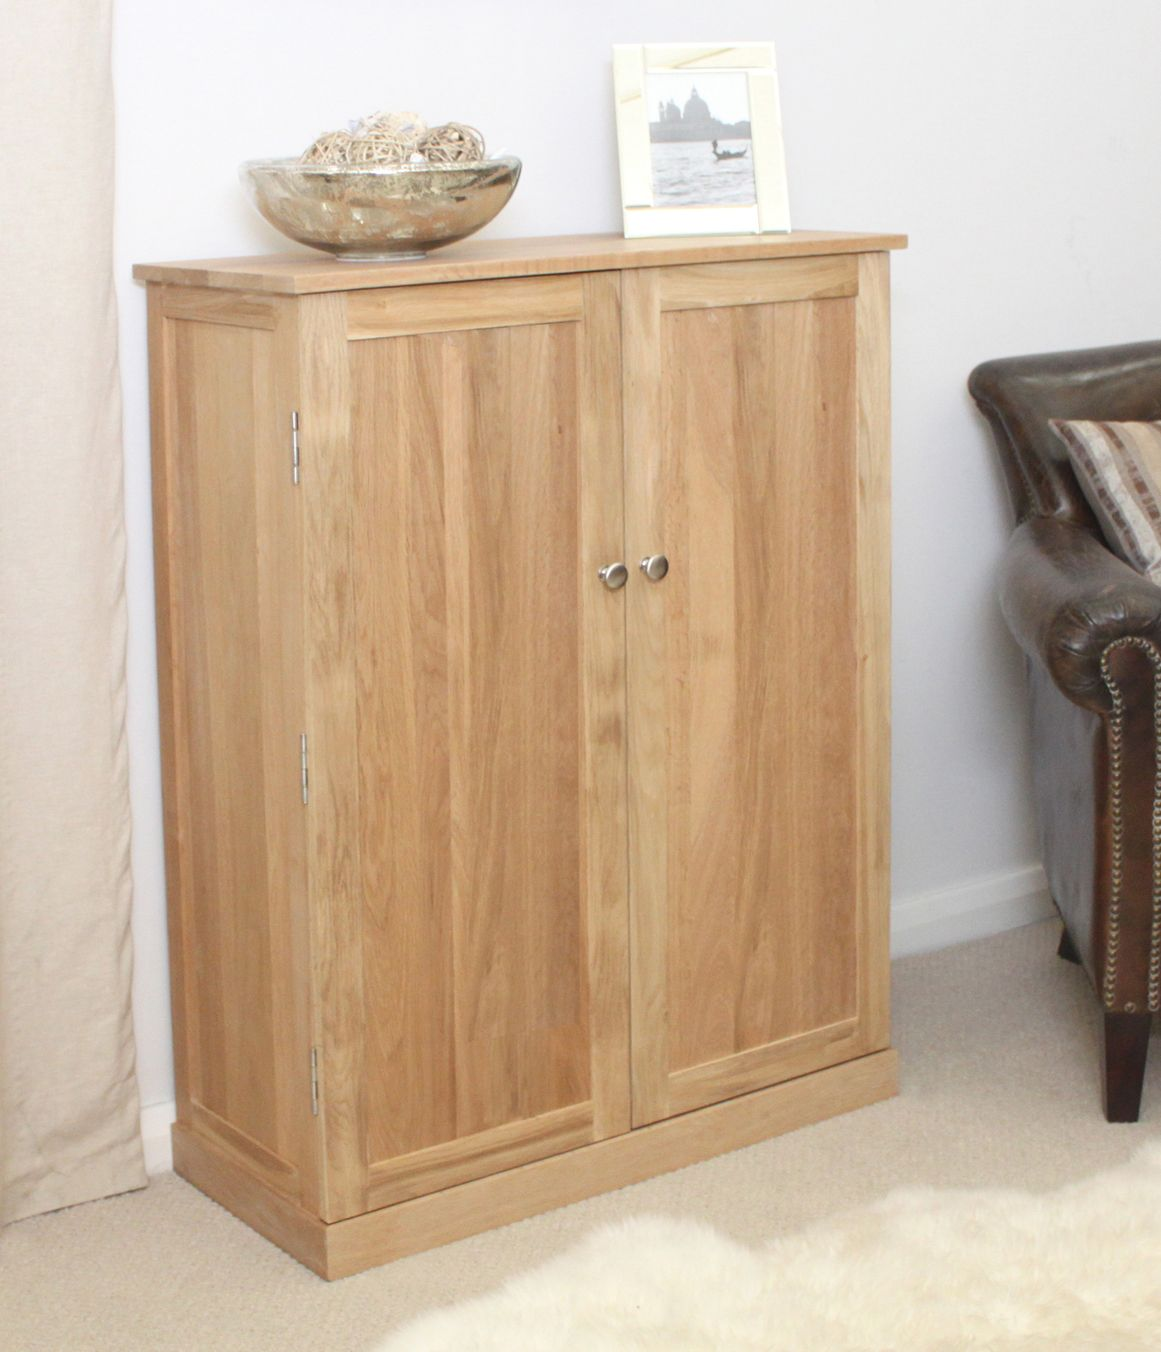 strathmore solid walnut furniture shoe cupboard cabinet. Large Solid Oak Shoe Cupboard If Your Hallway Has Become A Dumping Ground For Coats, Strathmore Walnut Furniture Cabinet